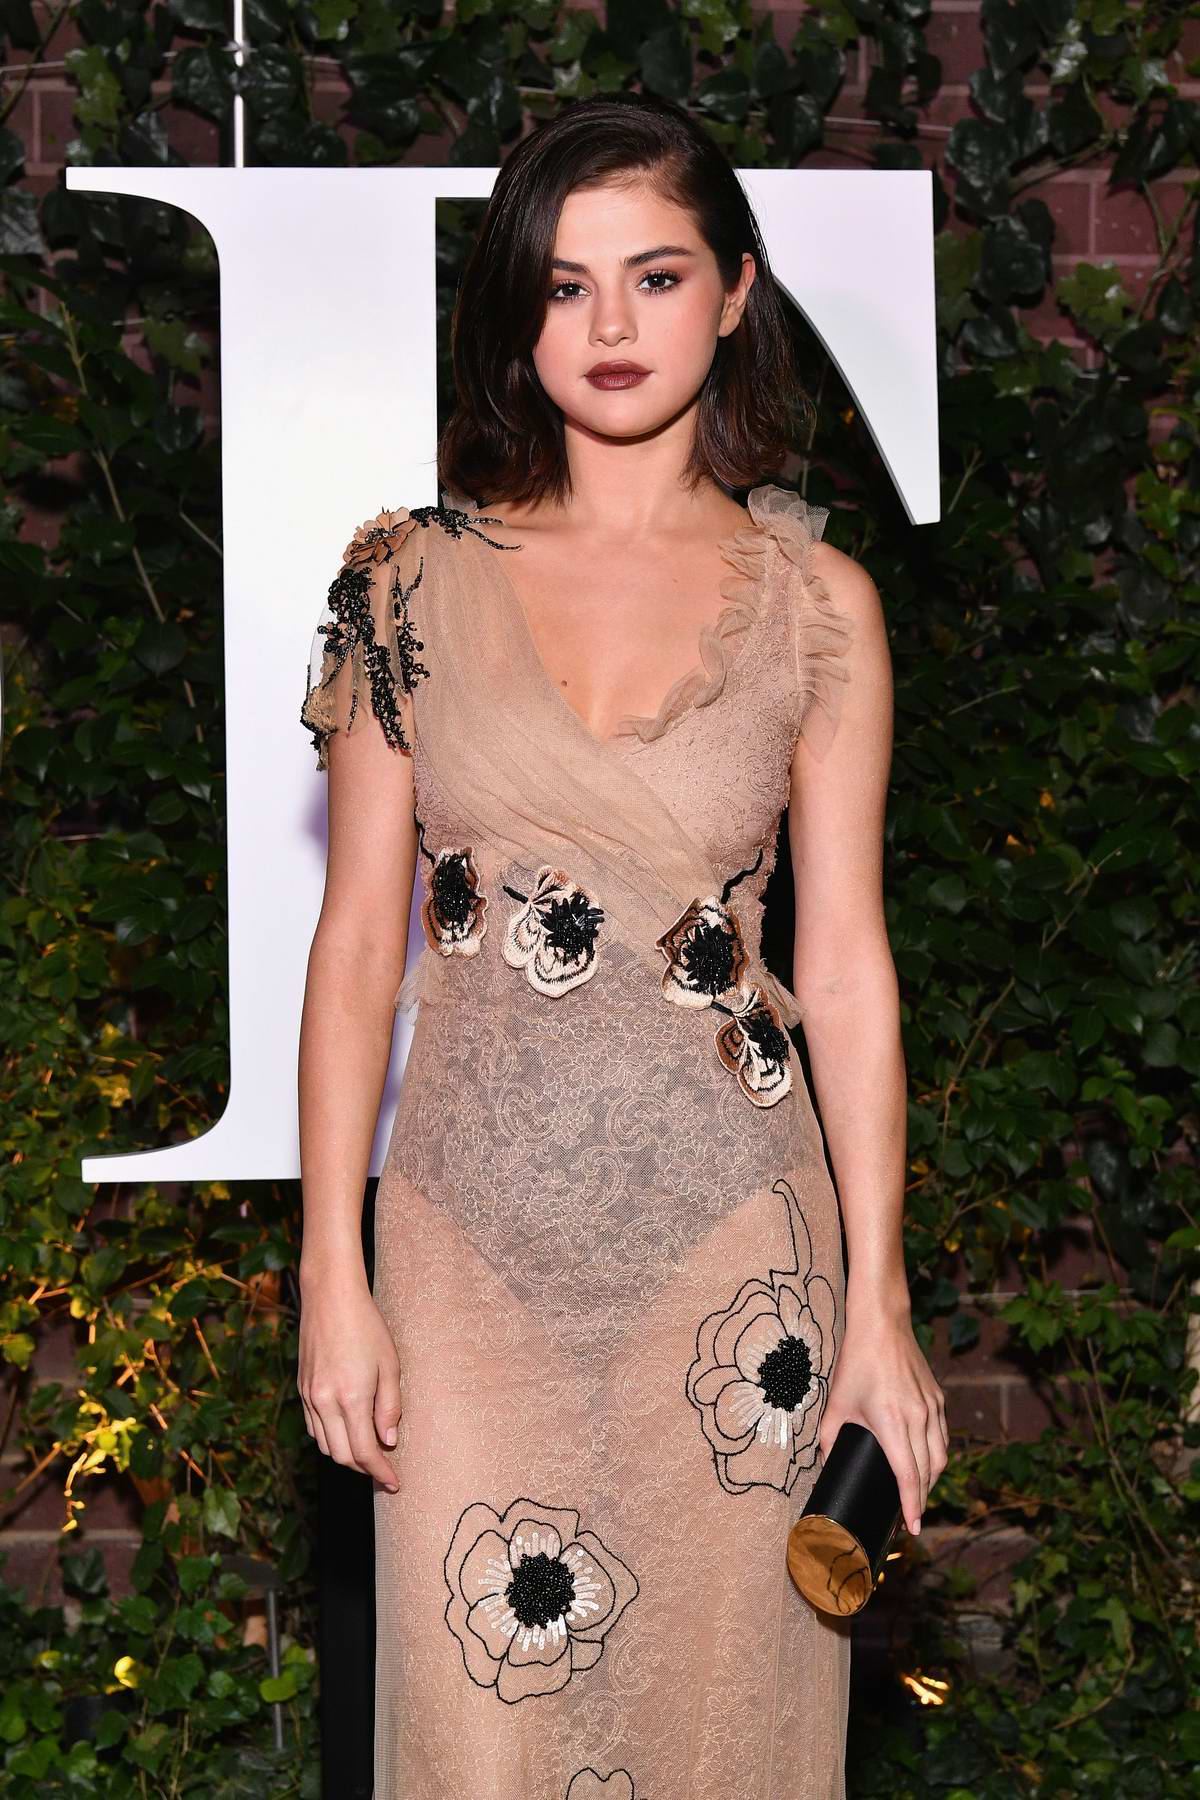 selena gomez archives | page 12 of 15 | celebsfirst